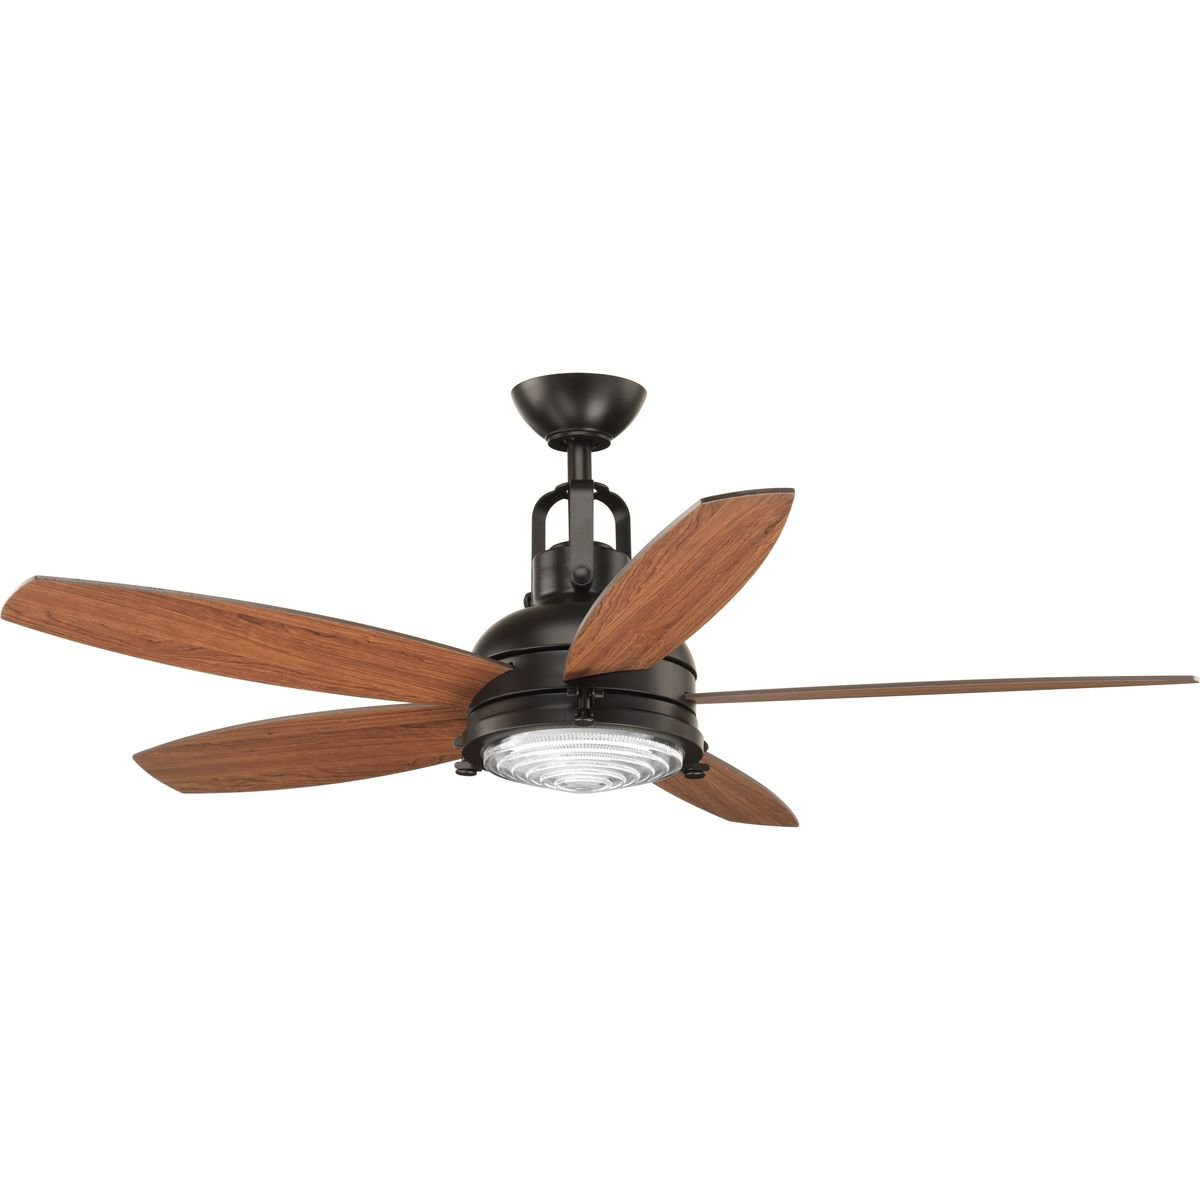 Gehlert 5 Blade Led Ceiling Fan With Remote Regarding Current Marcoux 5 Blade Ceiling Fans (Gallery 8 of 20)